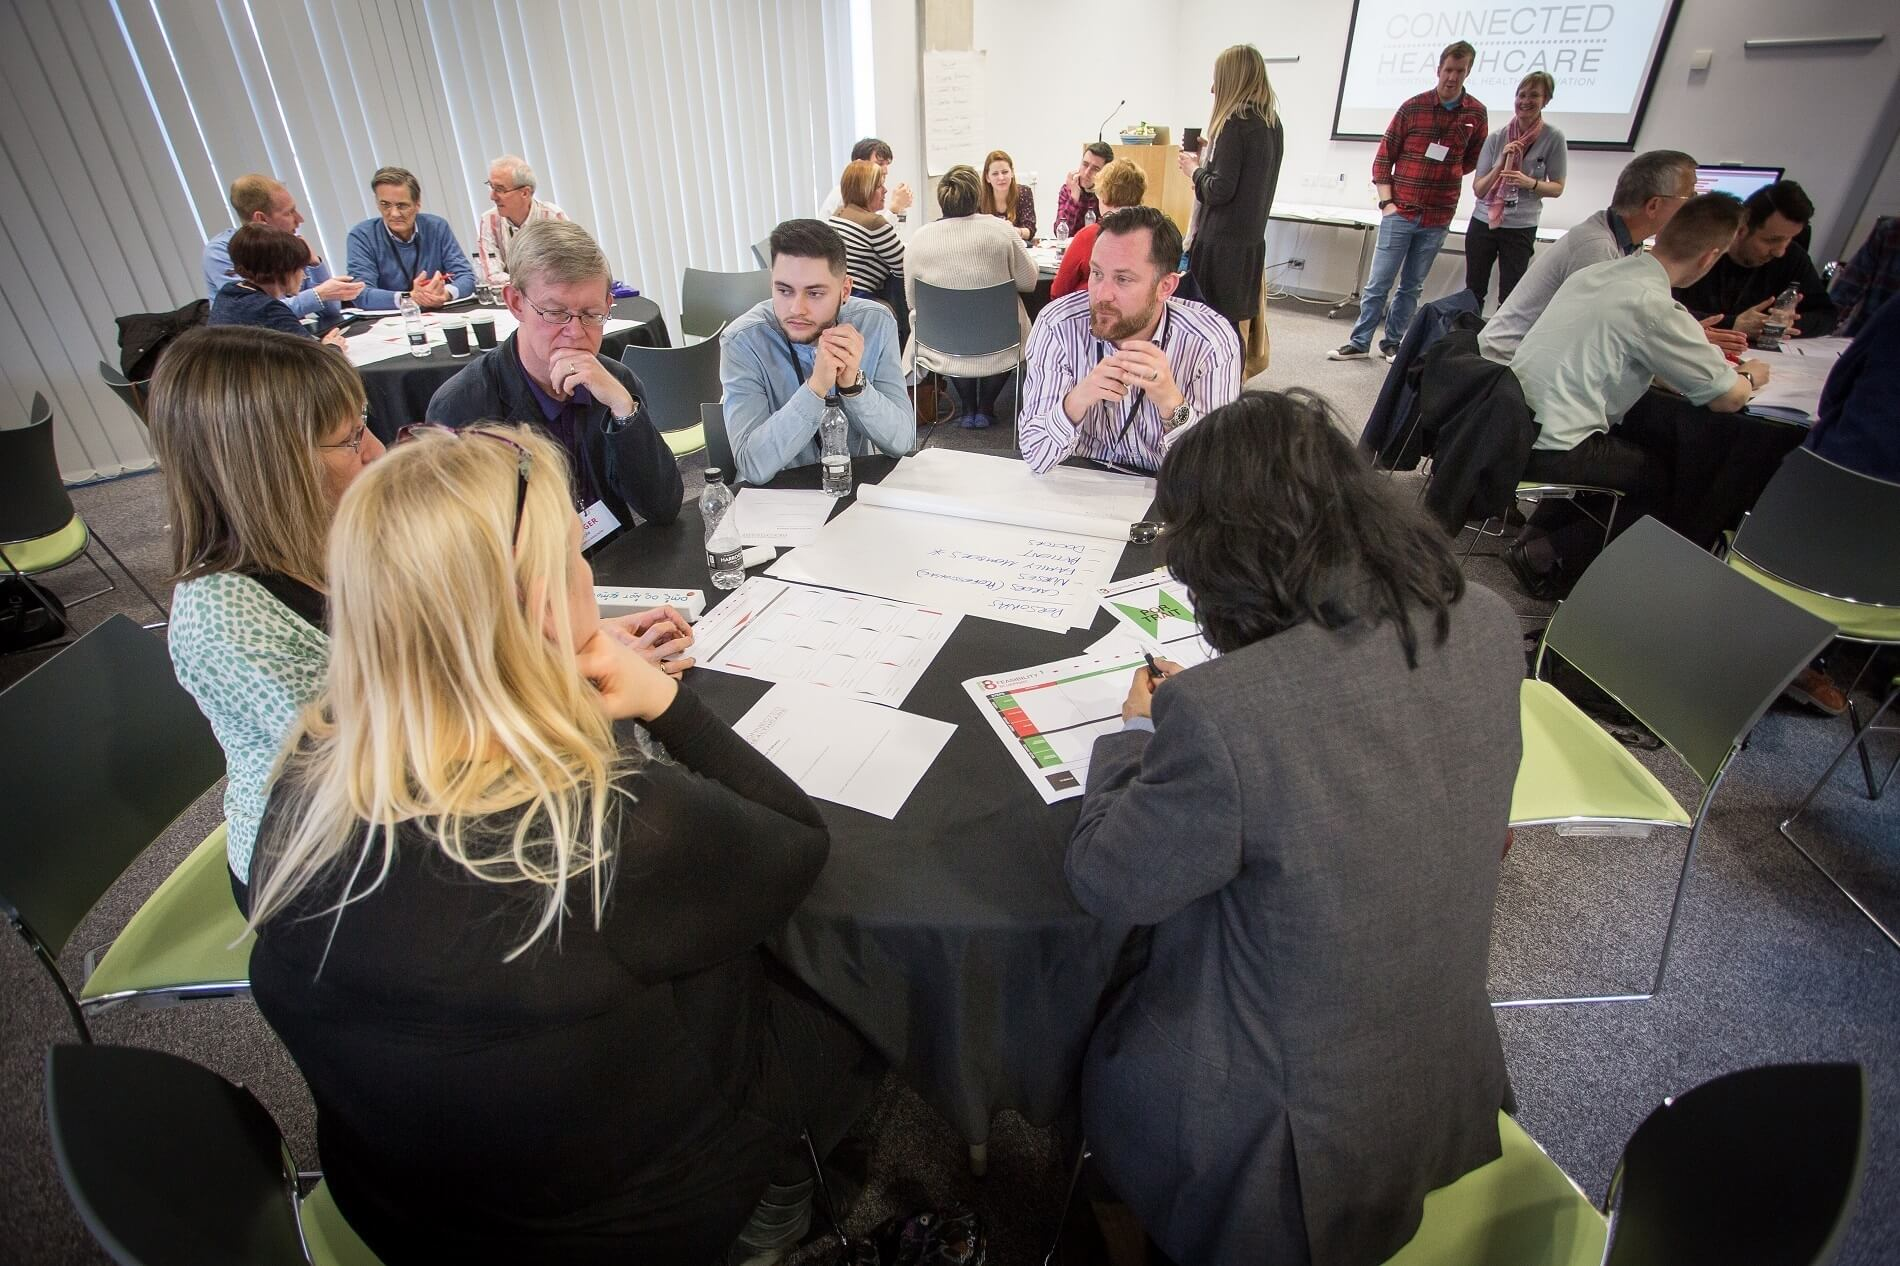 Digital specialists rise to healthcare design challenge